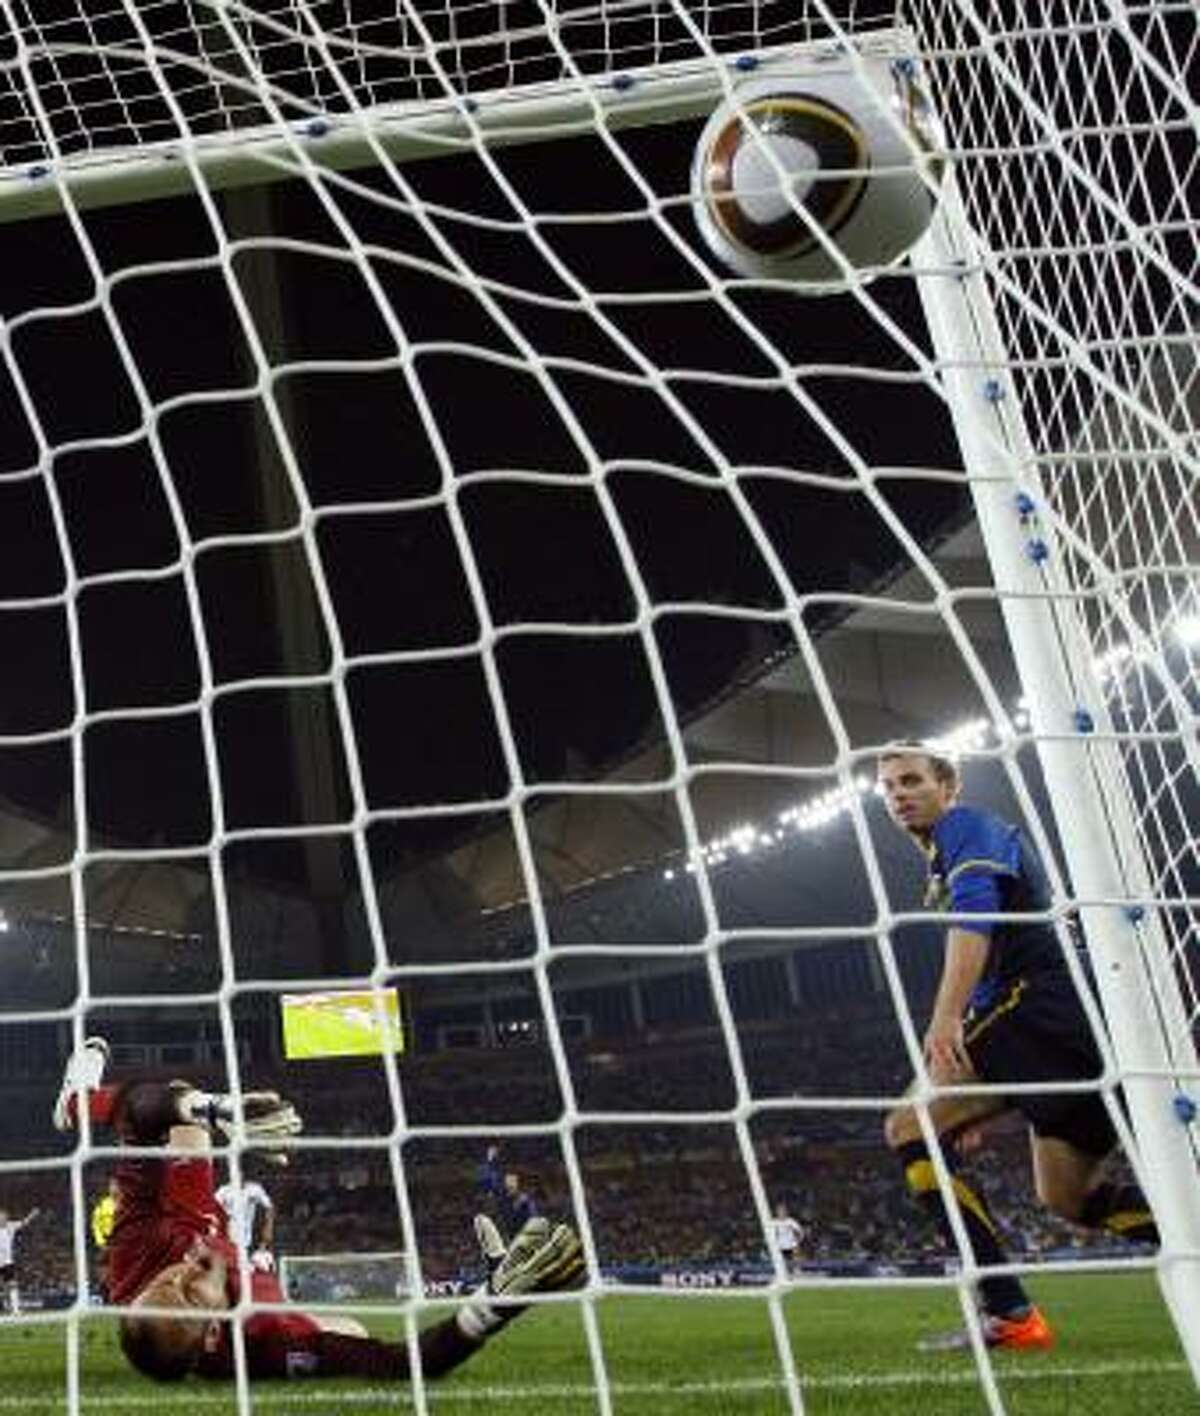 The ball hits the back of the net for Lukas Podolski, giving the German side its first goal.